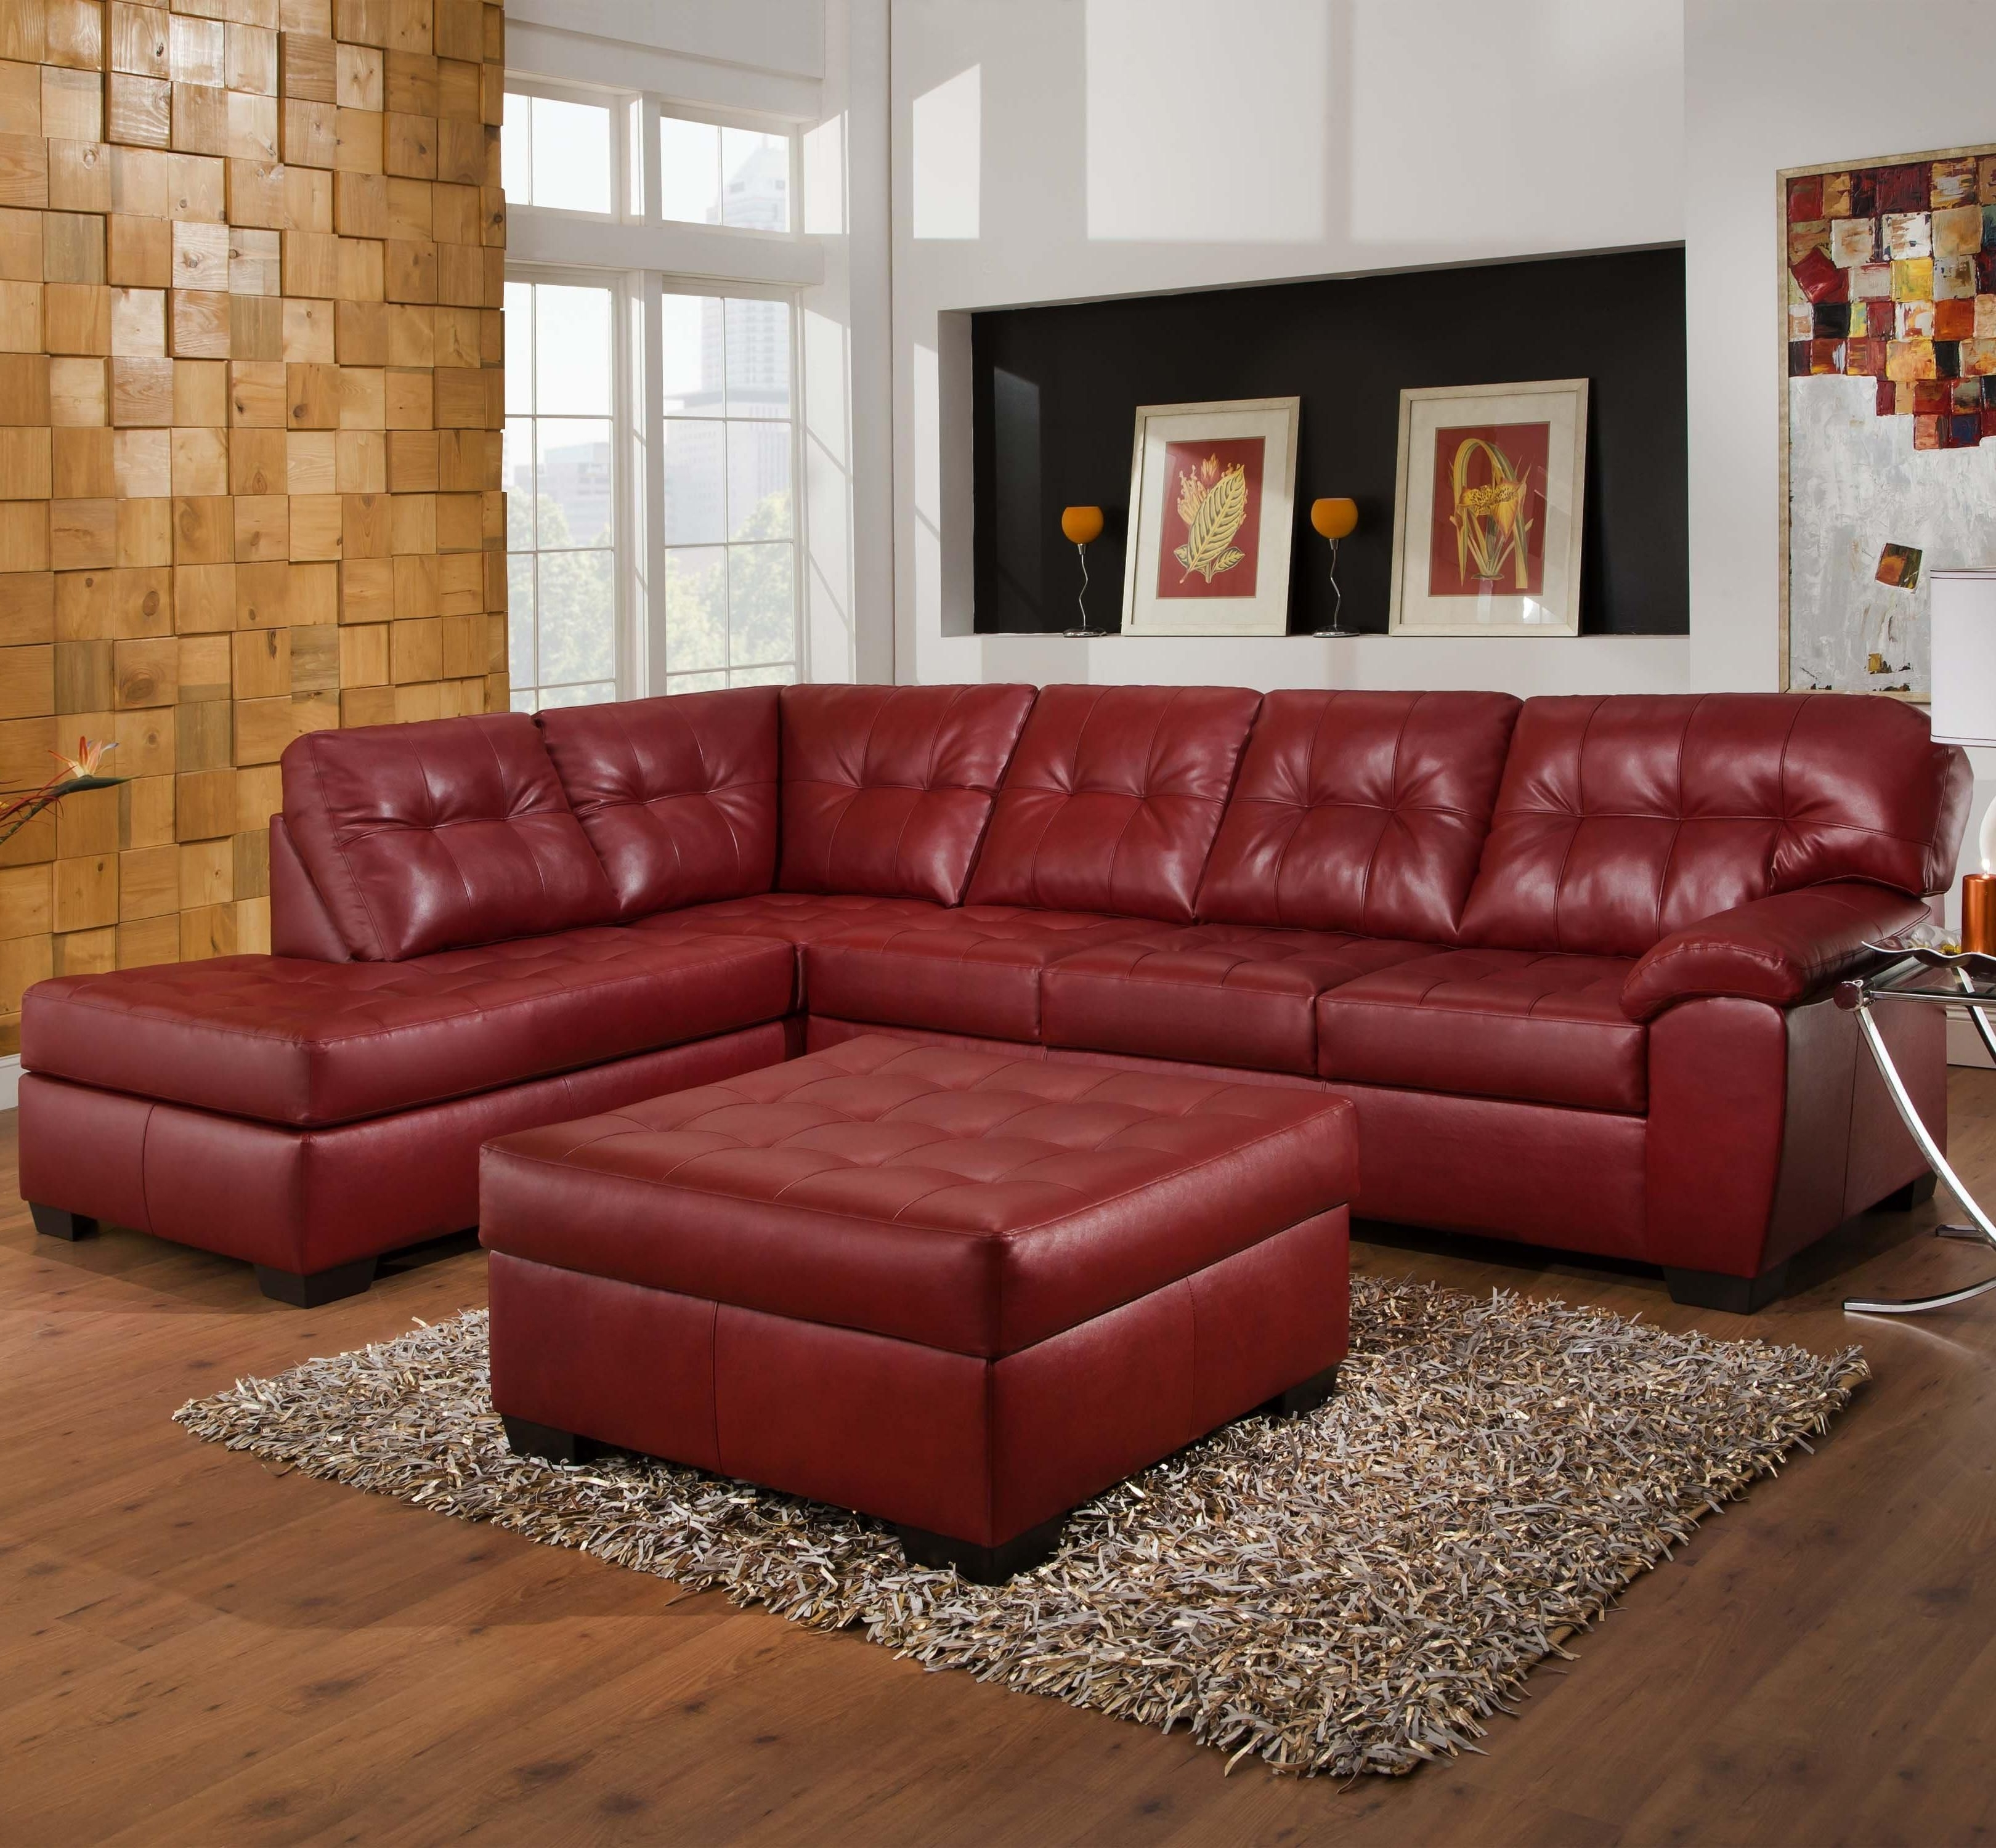 Latest Sectional Sofas At Bad Boy Intended For 9569 2 Piece Sectional With Tufted Seats & Backsimmons (View 18 of 20)